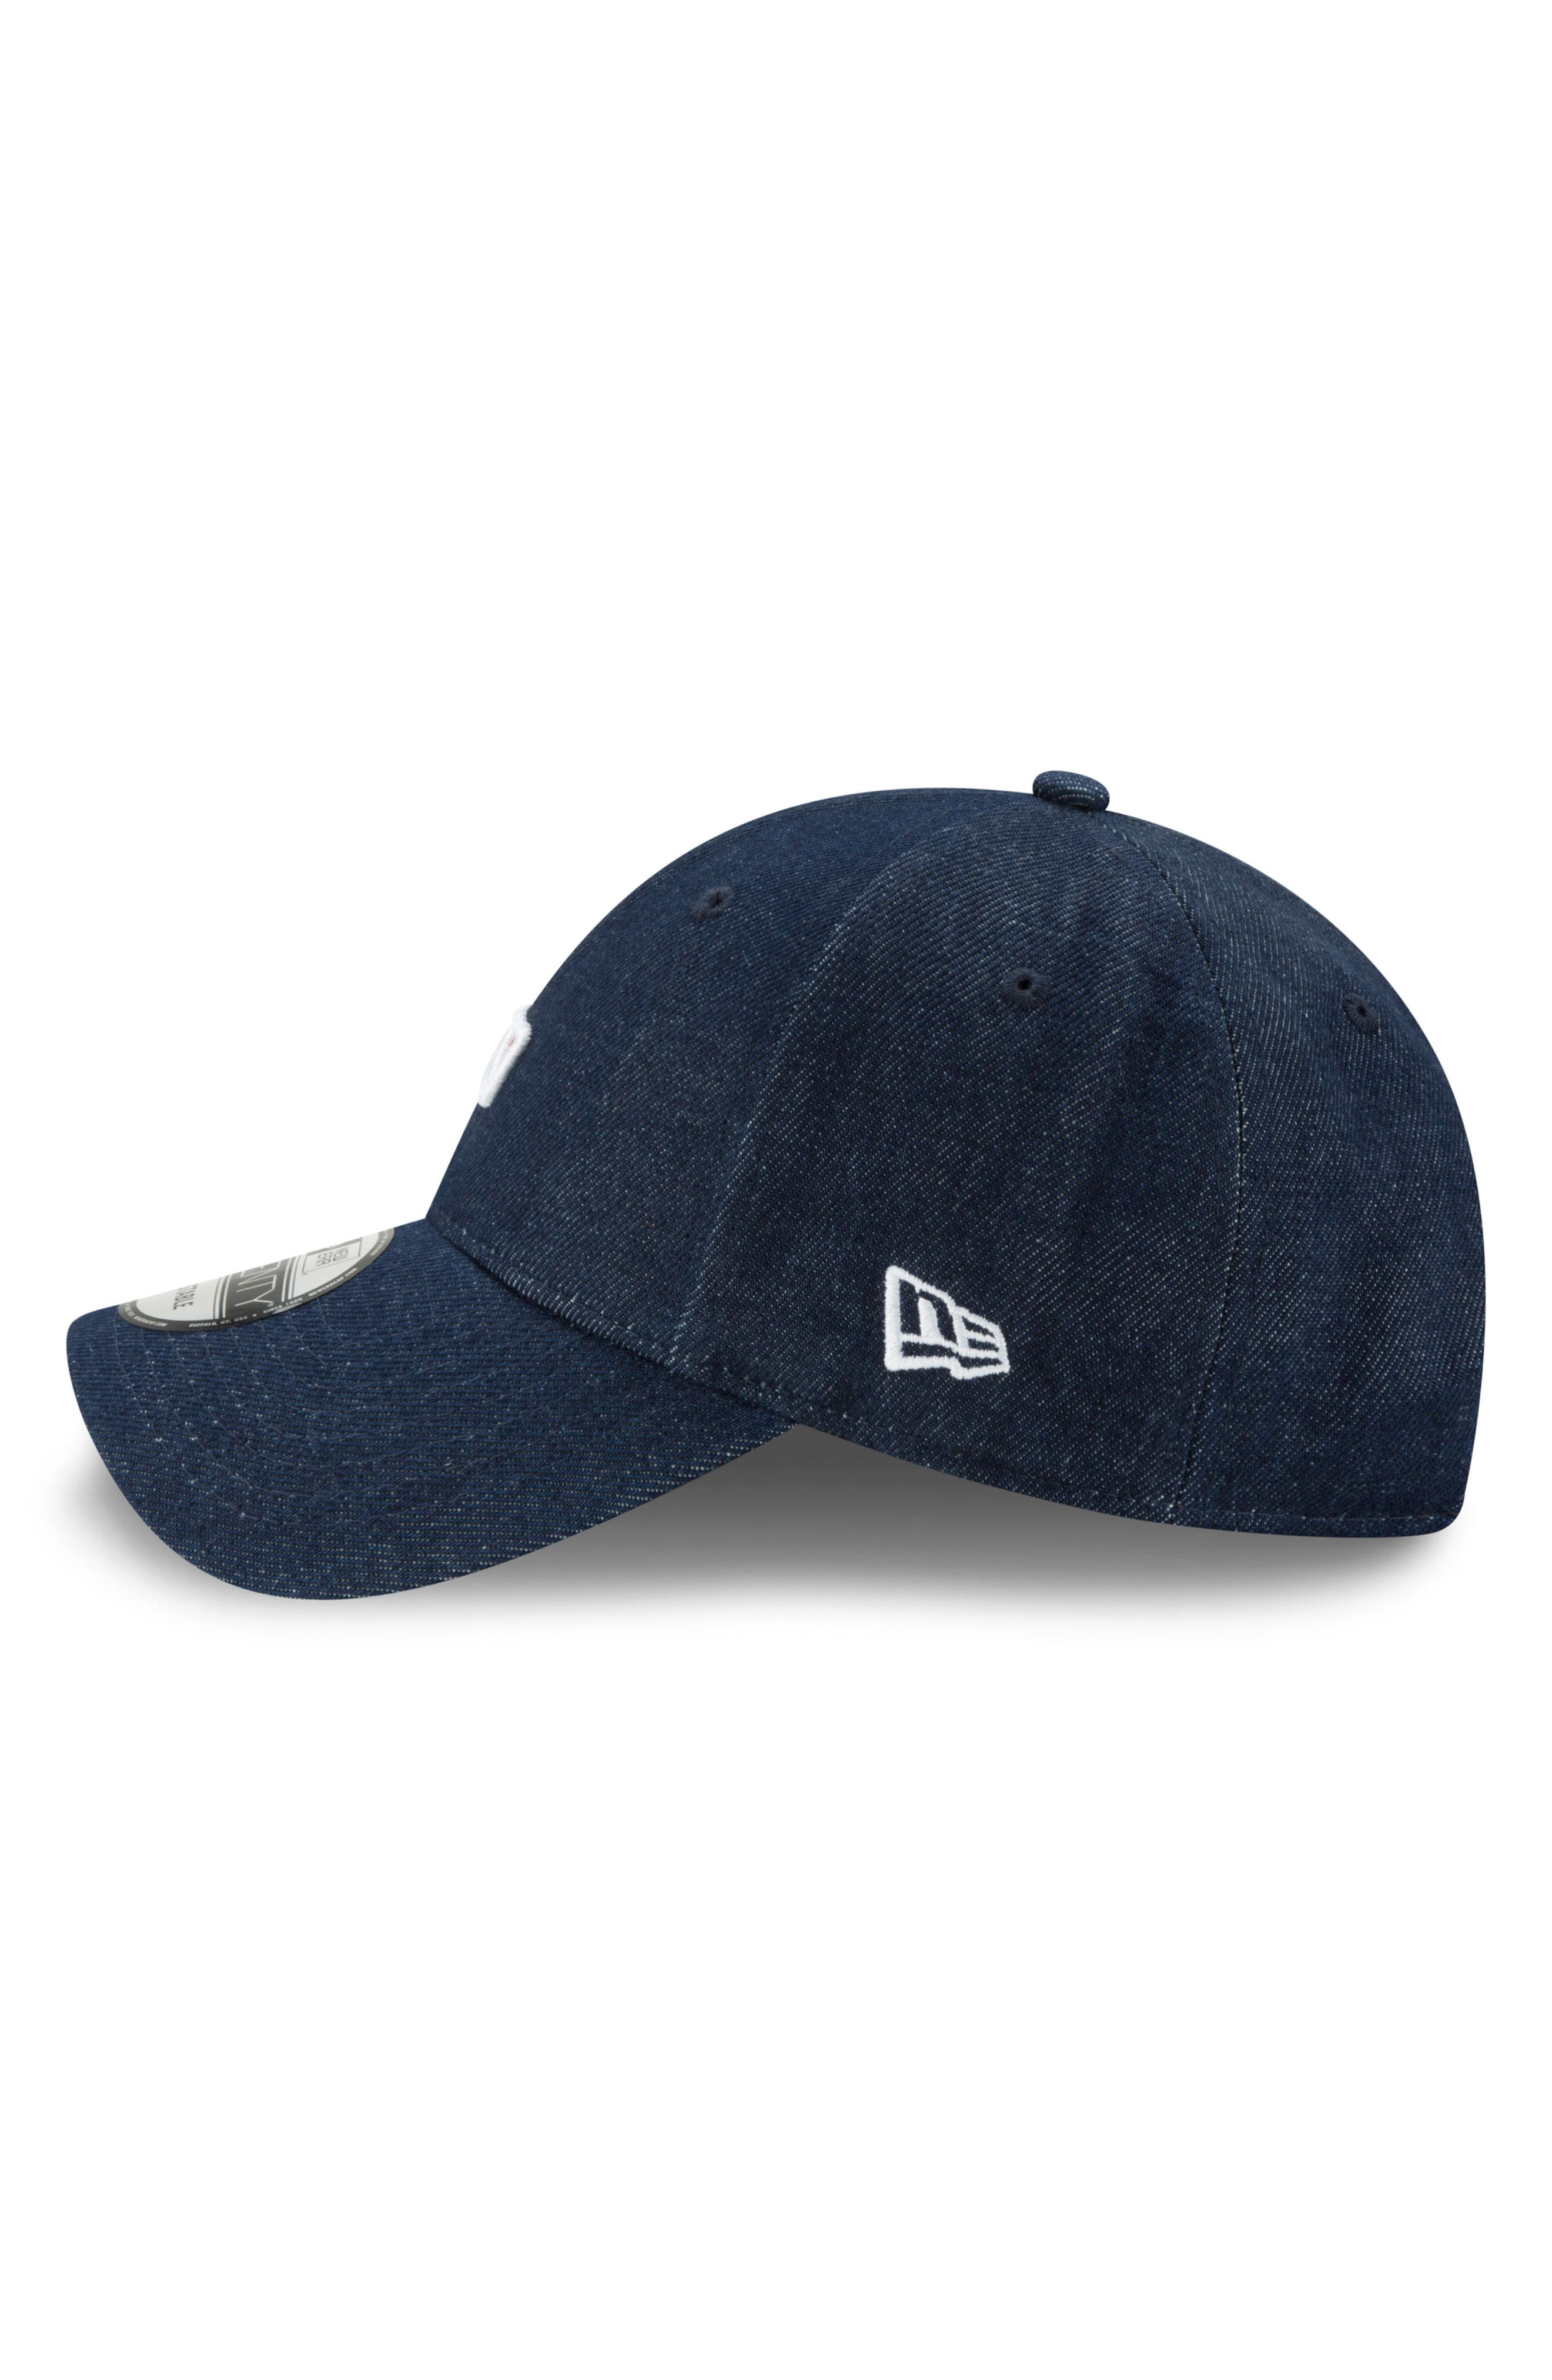 x Levi's<sup>®</sup> MLB Micro Batterman Baseball Cap,                             Alternate thumbnail 3, color,                             BLACK